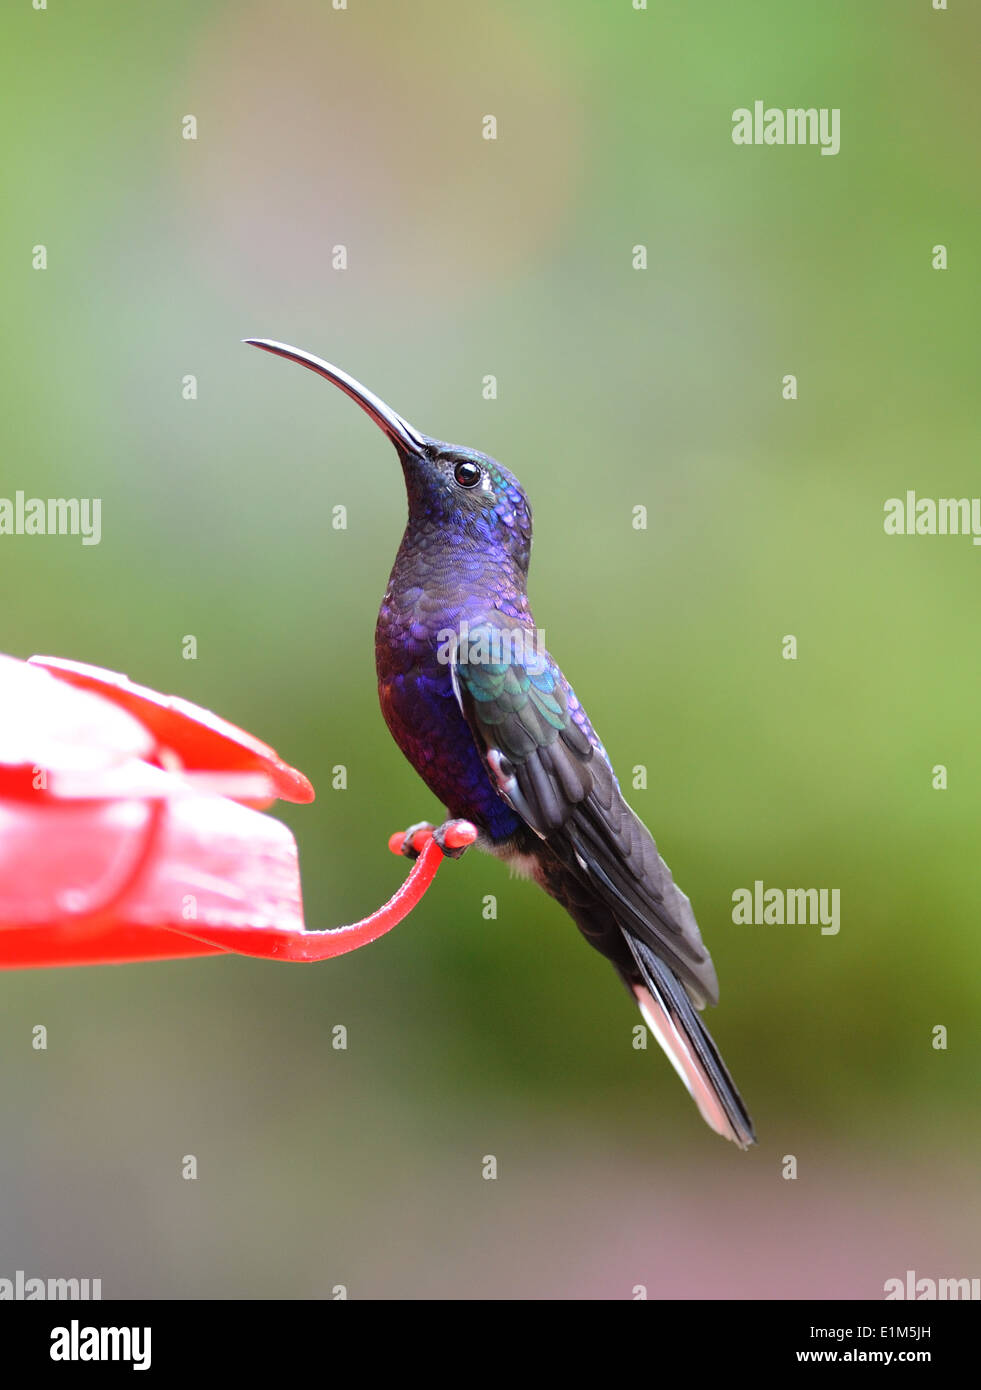 A male Violet Sabrewing (Campylopterus hemileucurus) hummingbird at a feeder. Its iridescent feathers appear blue or violet. Stock Photo